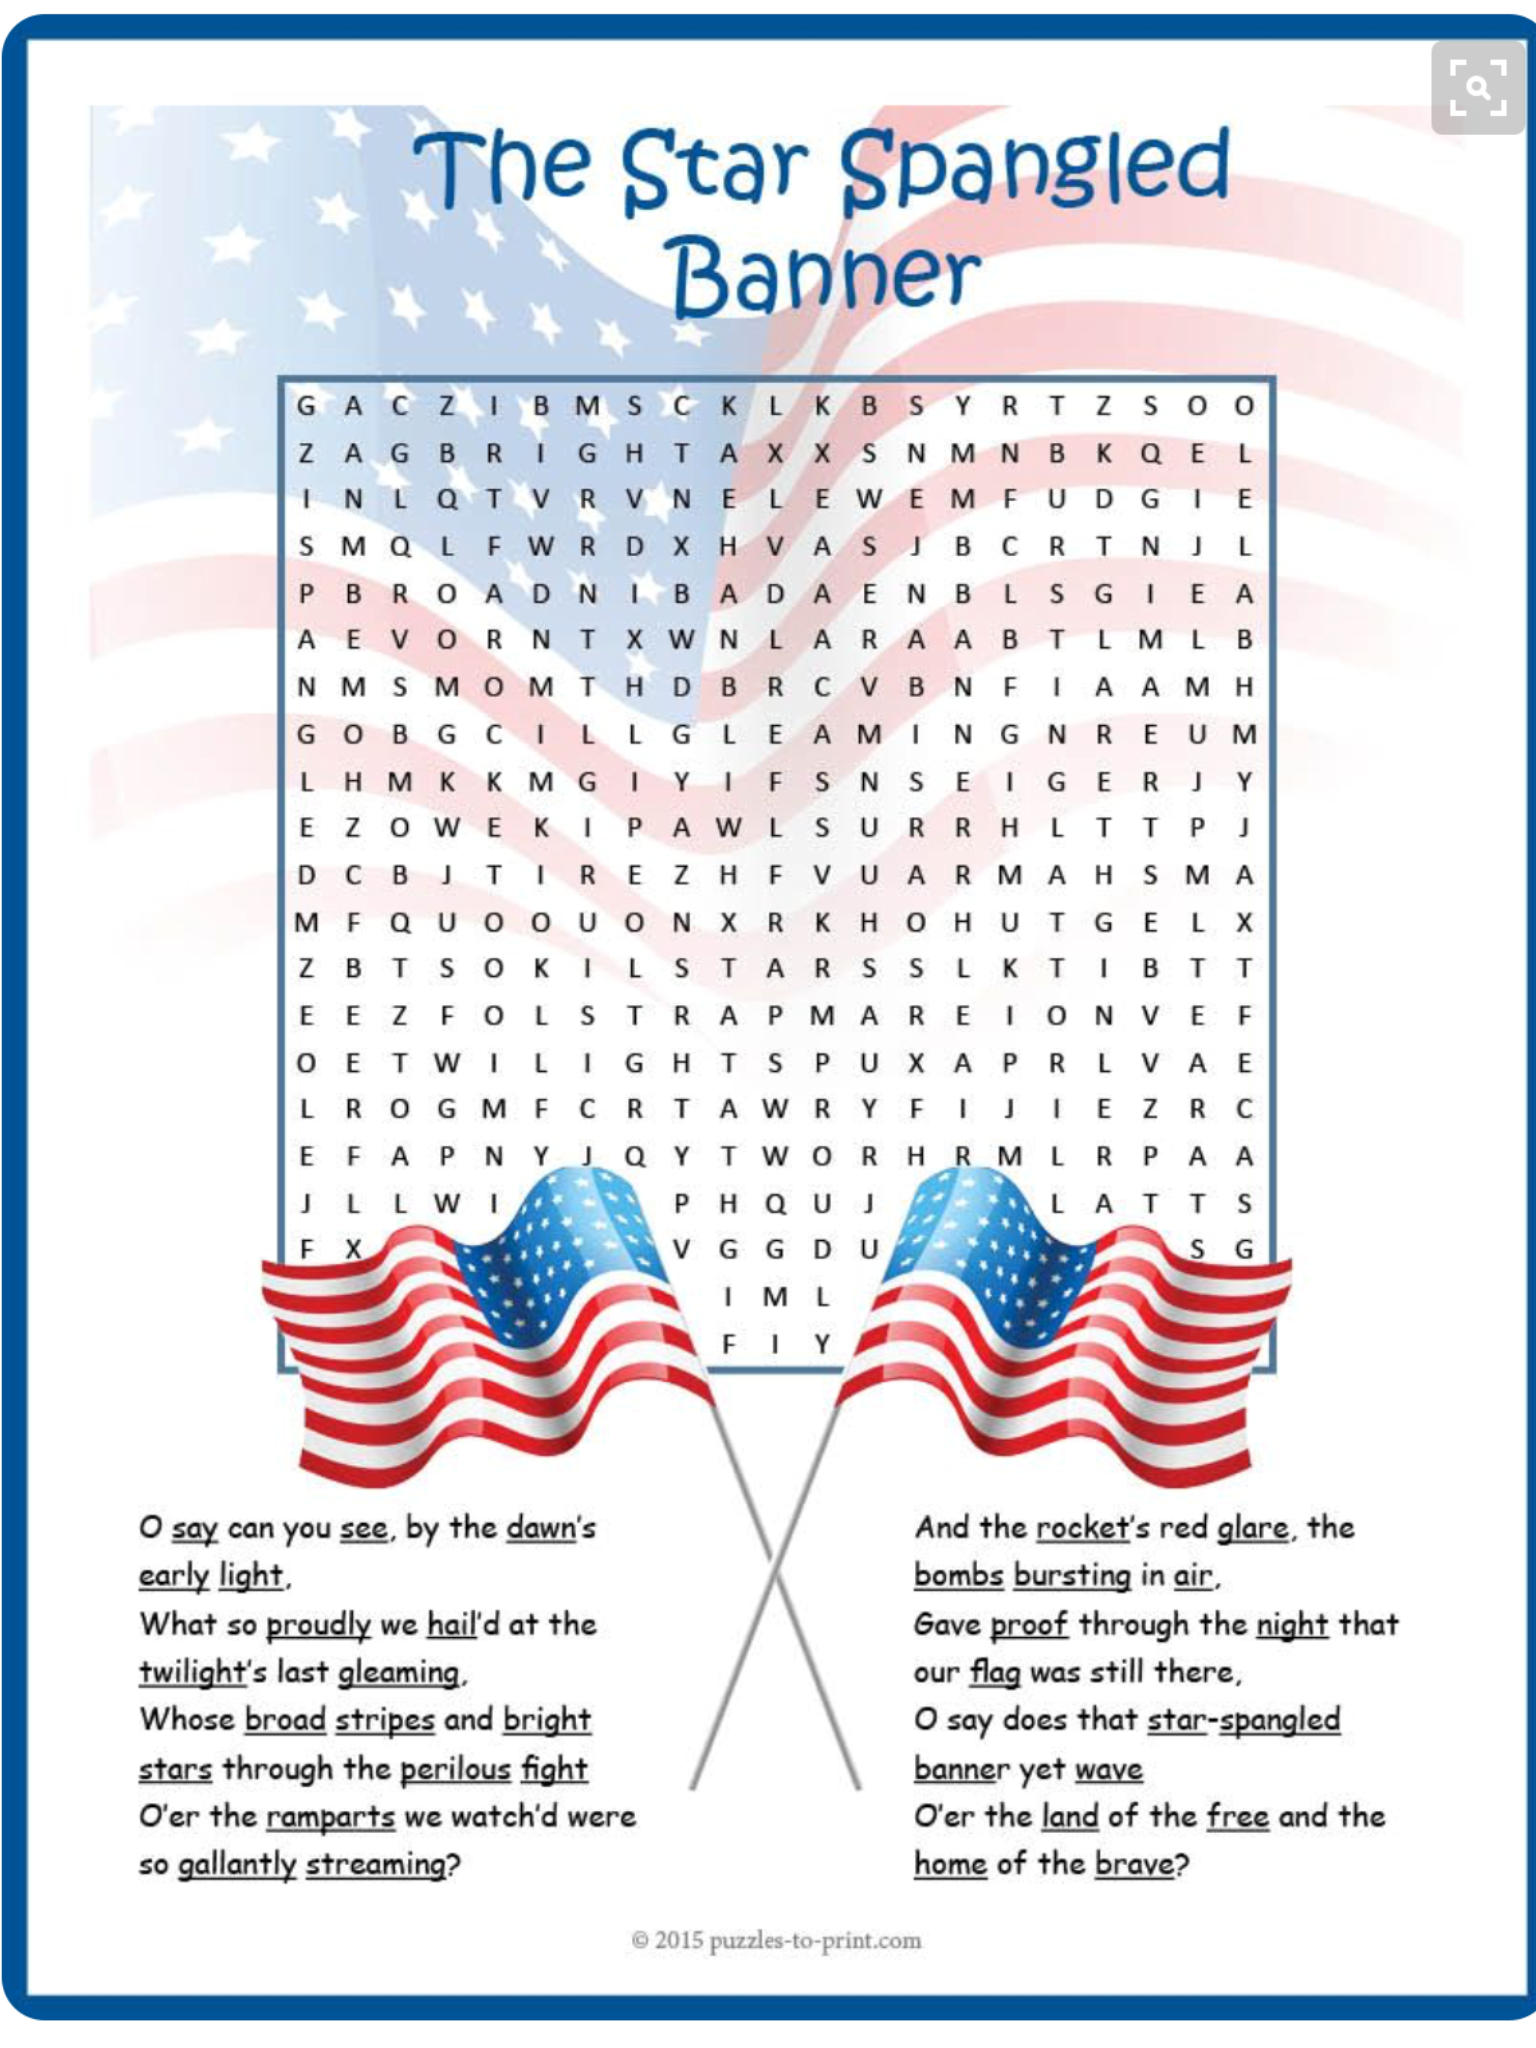 c34a3ad6b Pin by Clarise Brooks on Independence Day | Star spangled banner ...